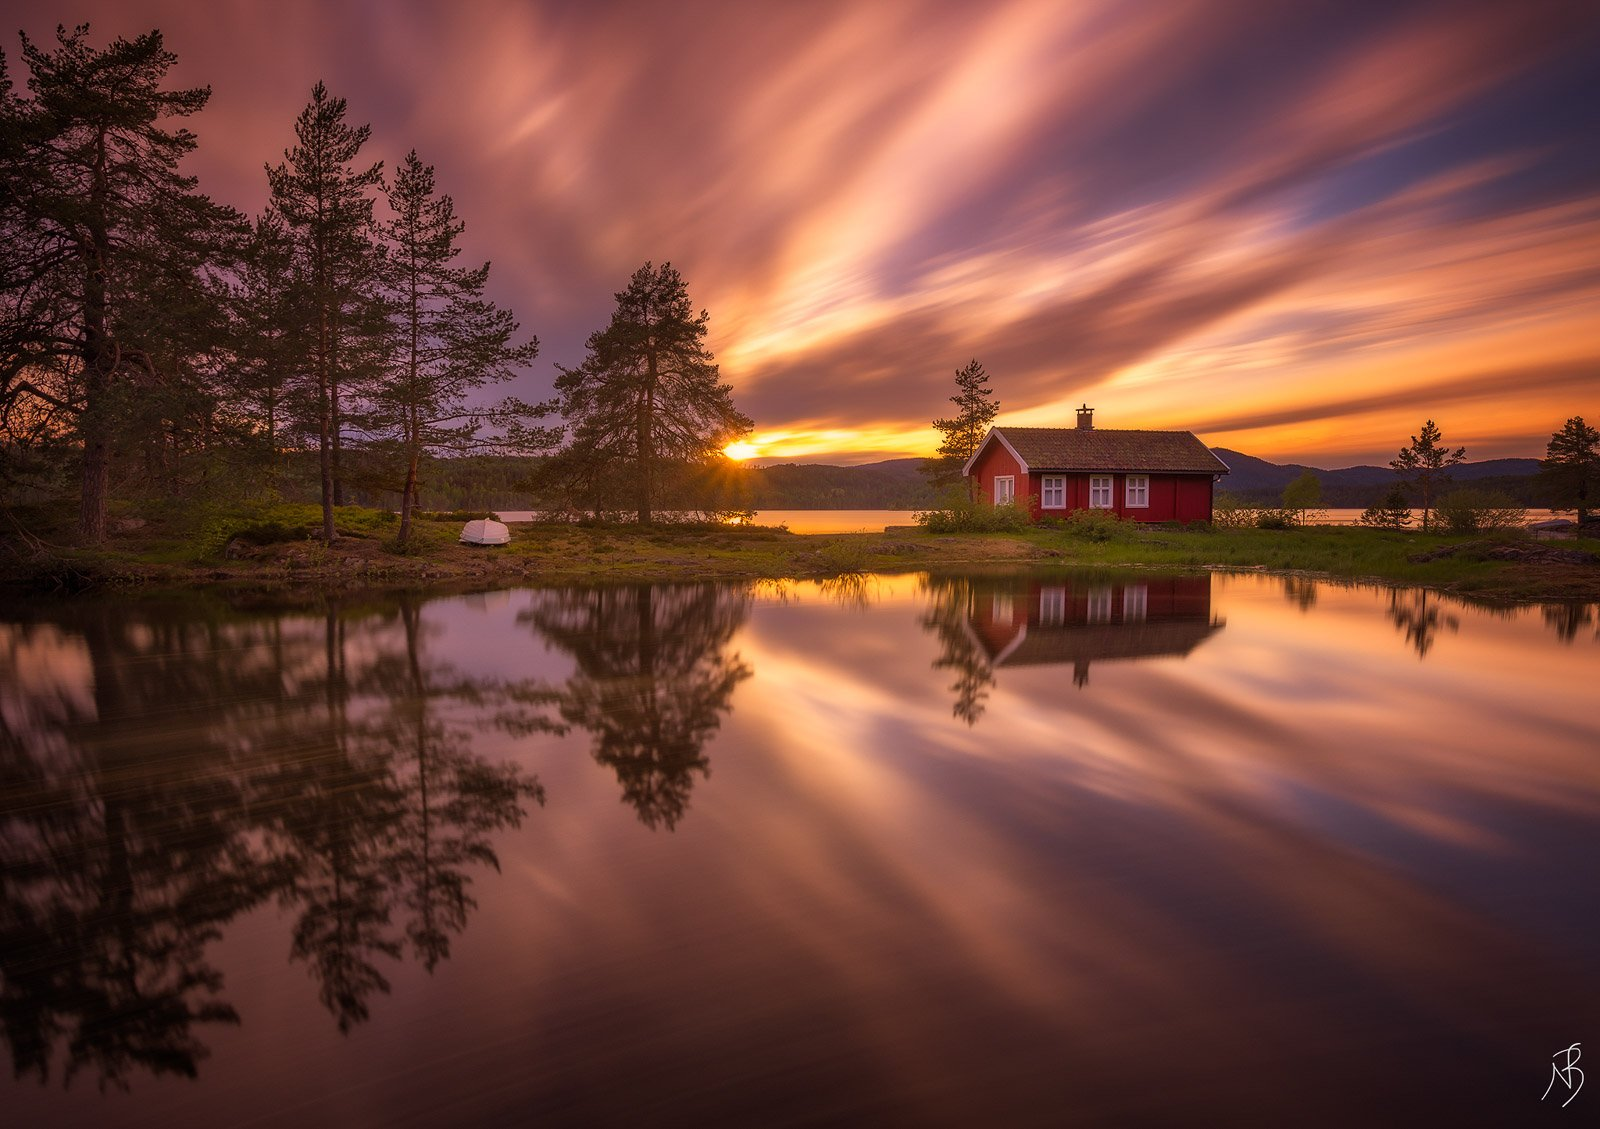 long exposures photo contest winner